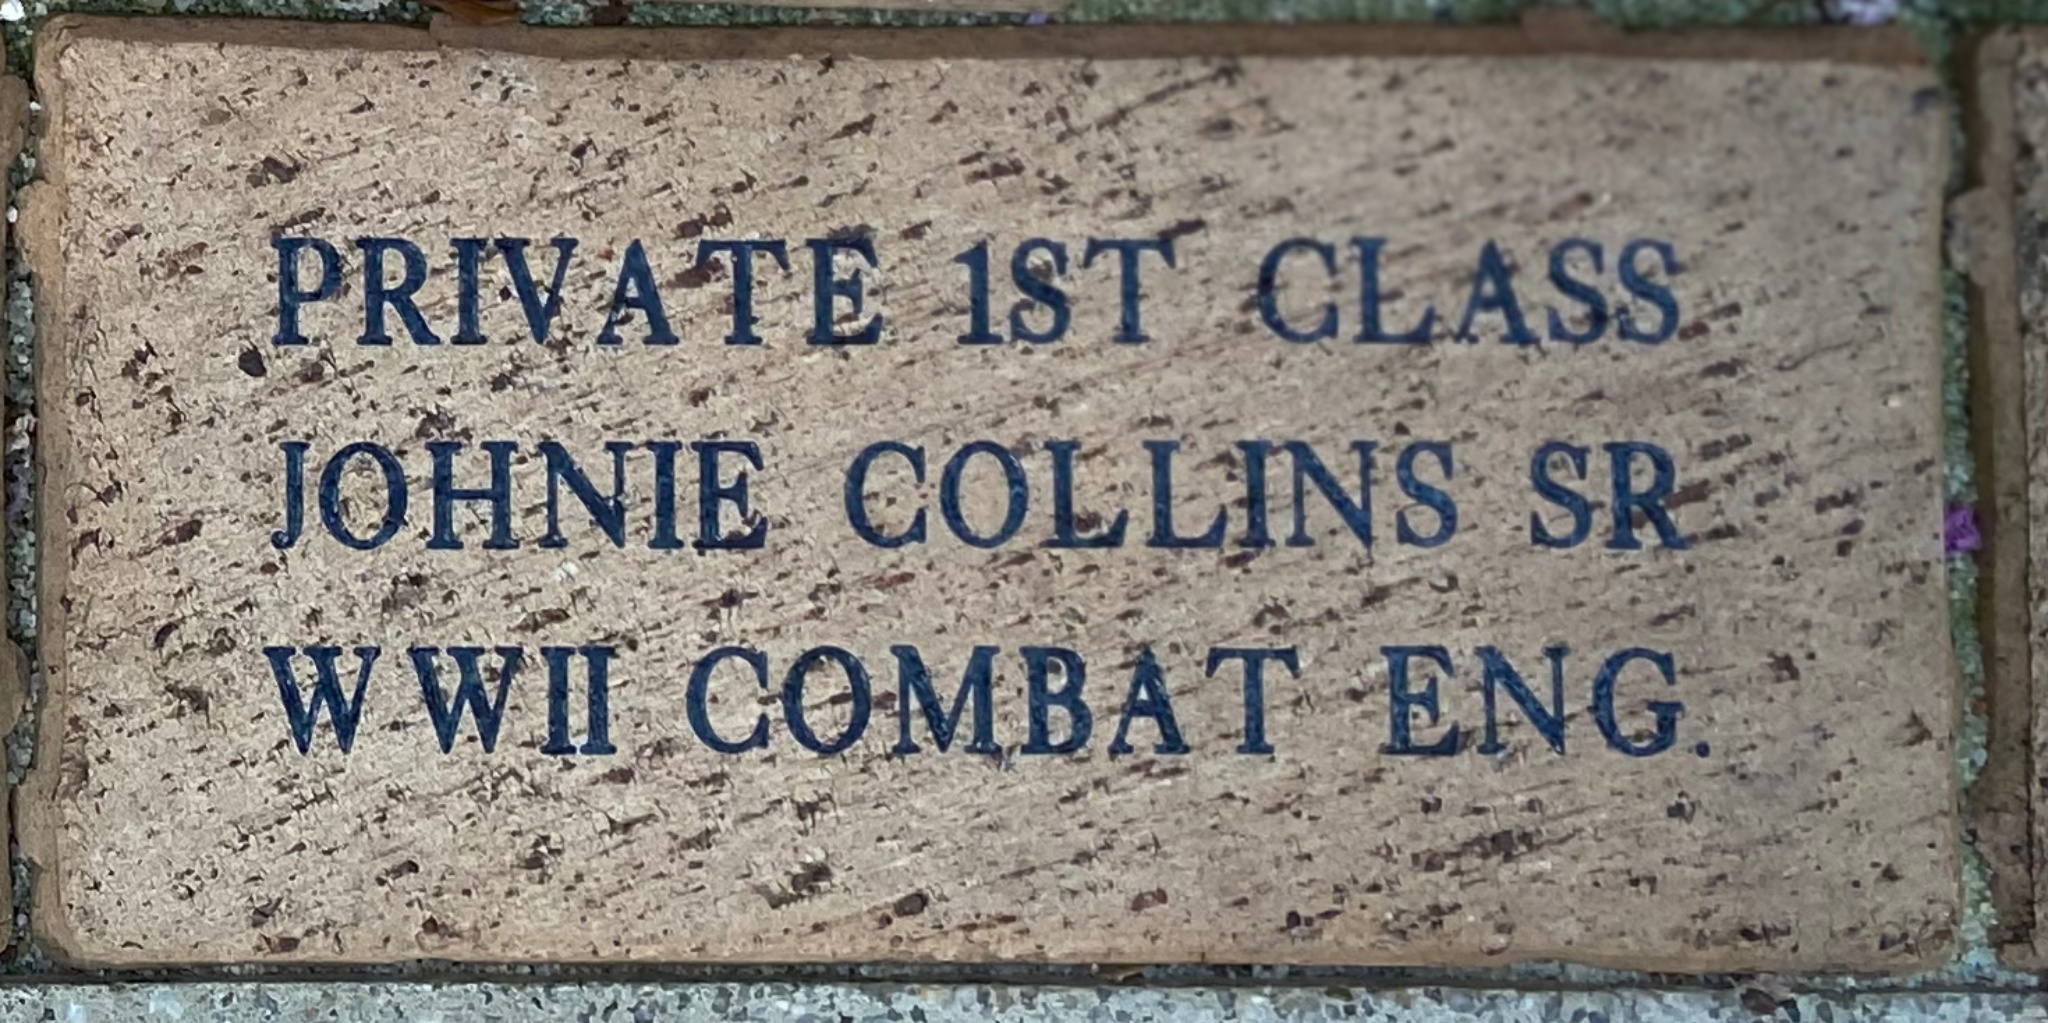 PRIVATE 1ST CLASS JOHNIE COLLINS SR WWII COMBAT ENG